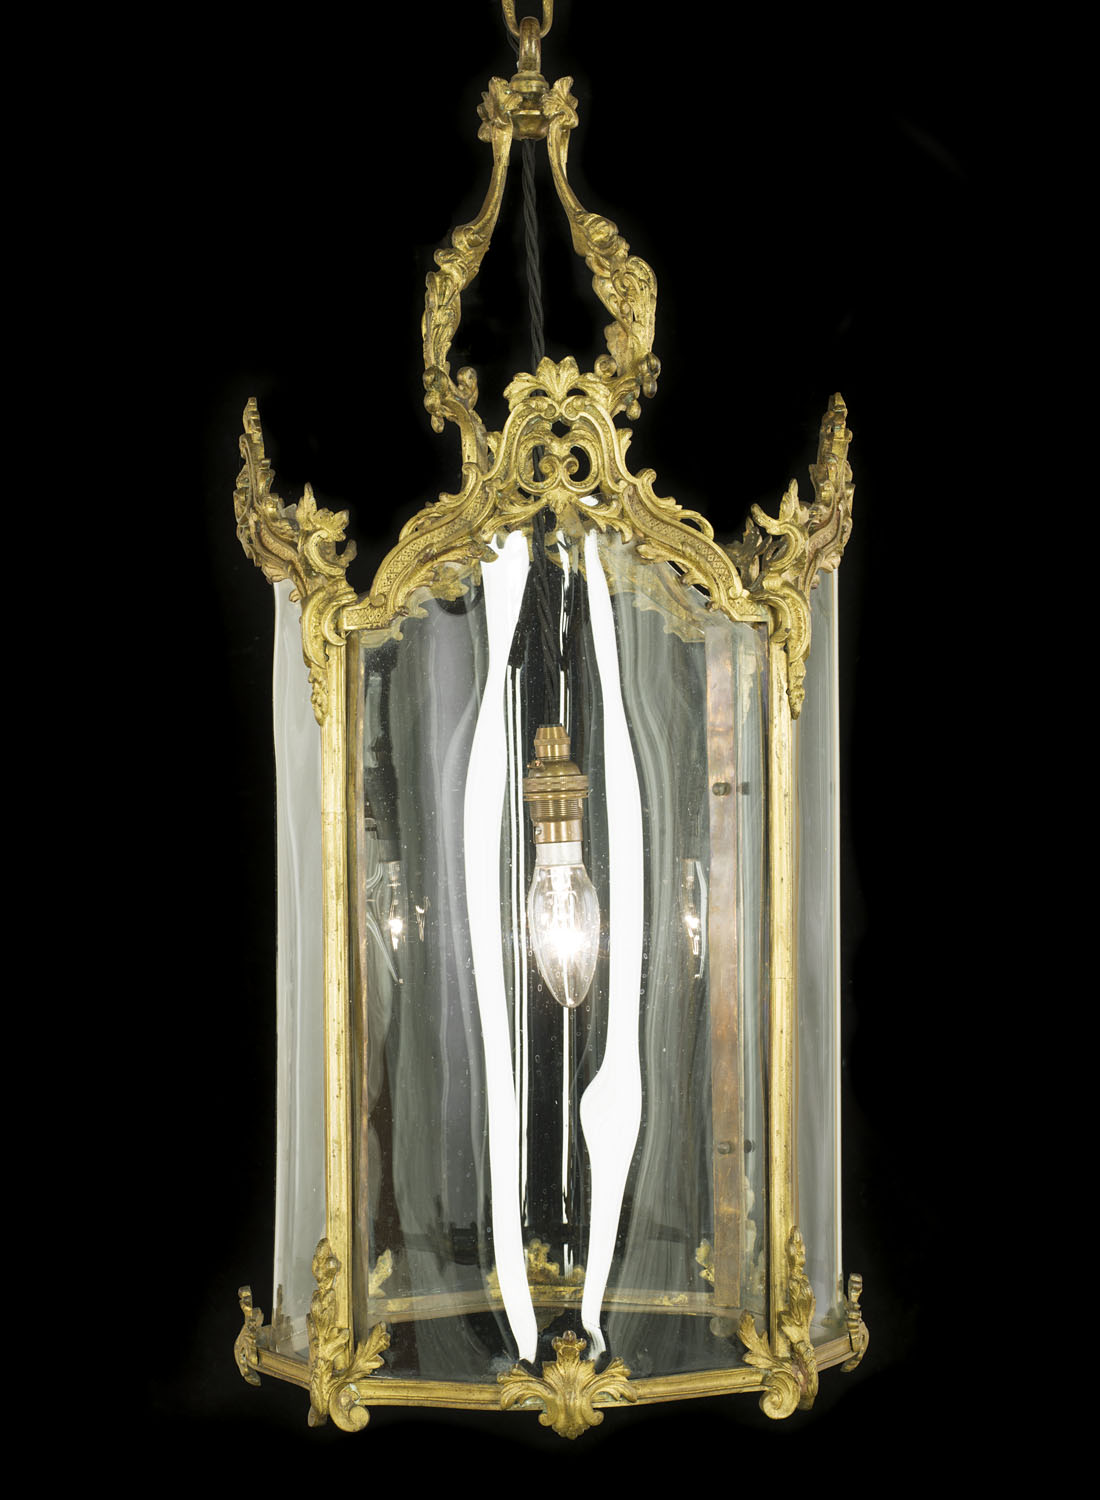 A large 20th century Rococo style gilt metal hall lantern